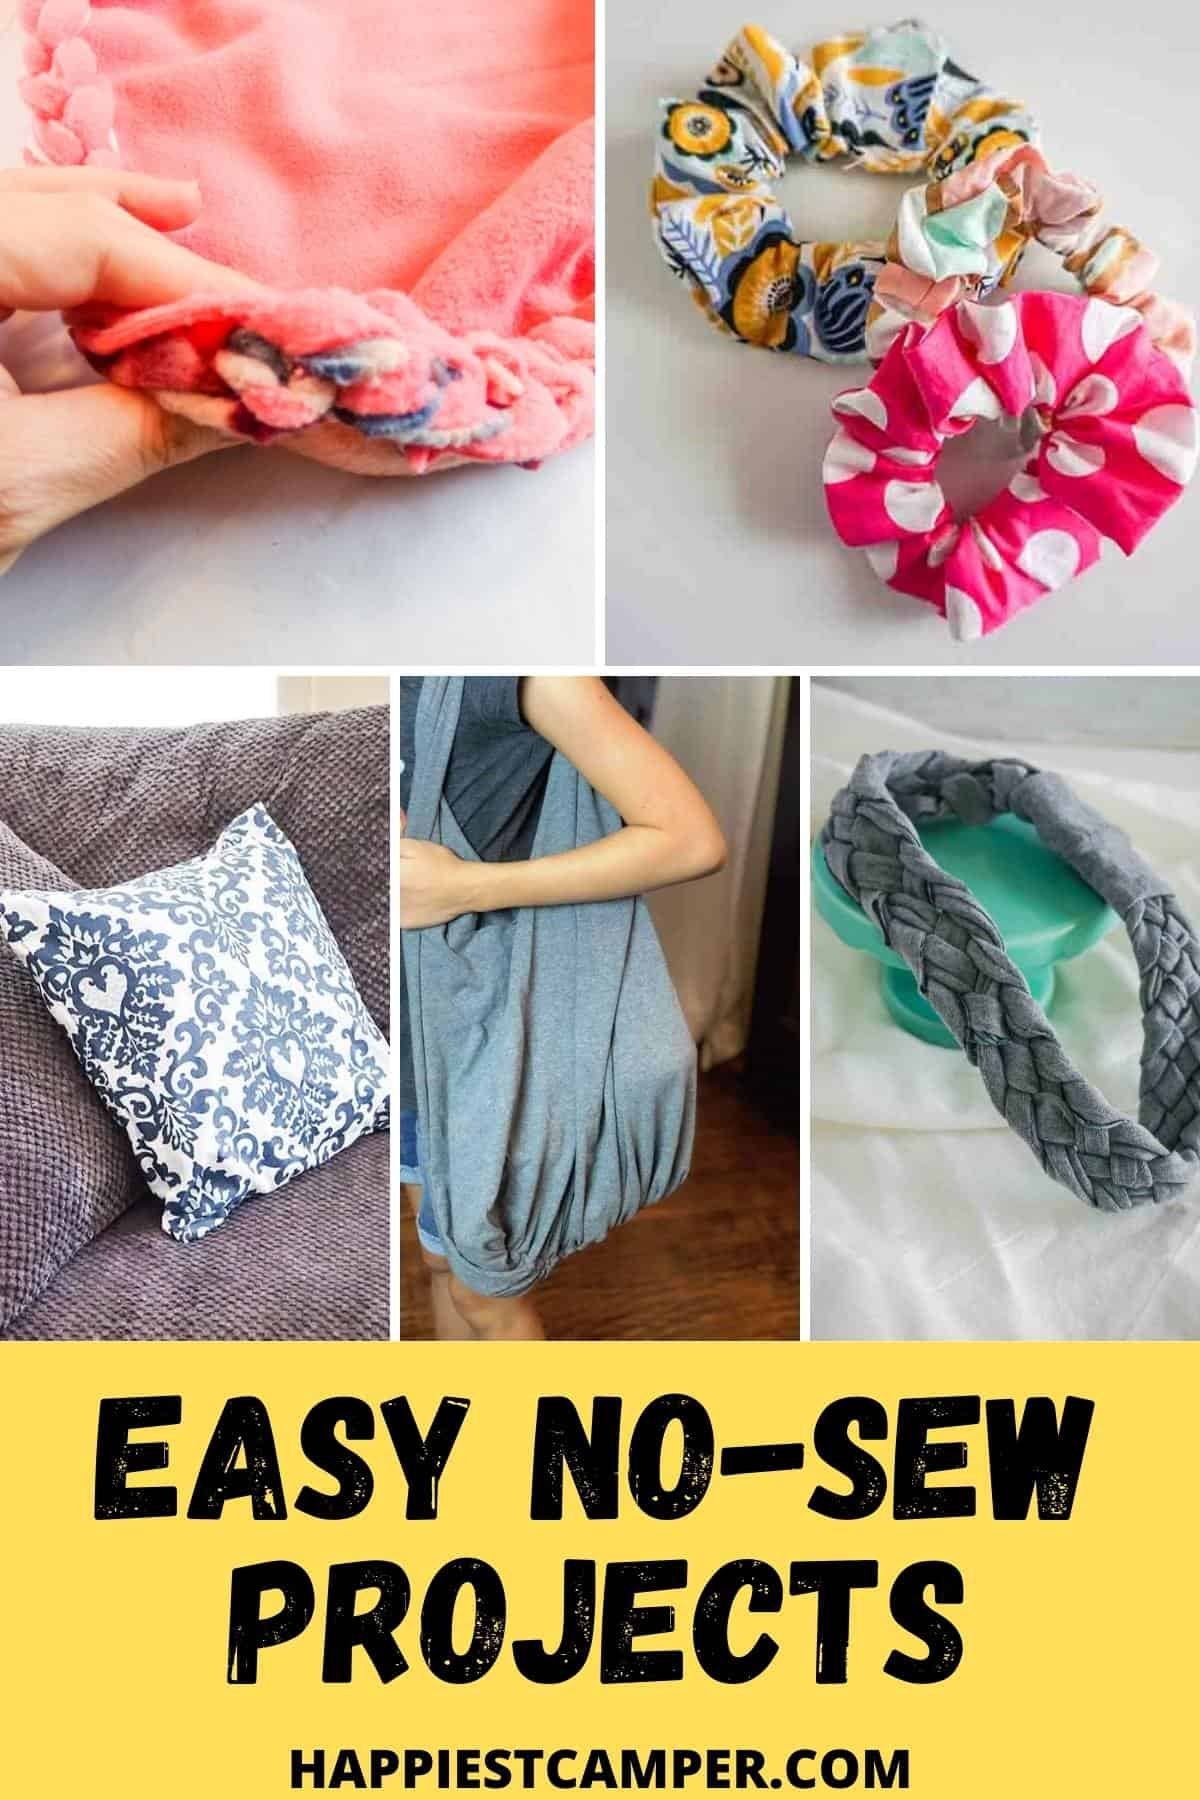 Easy No-Sew Projects